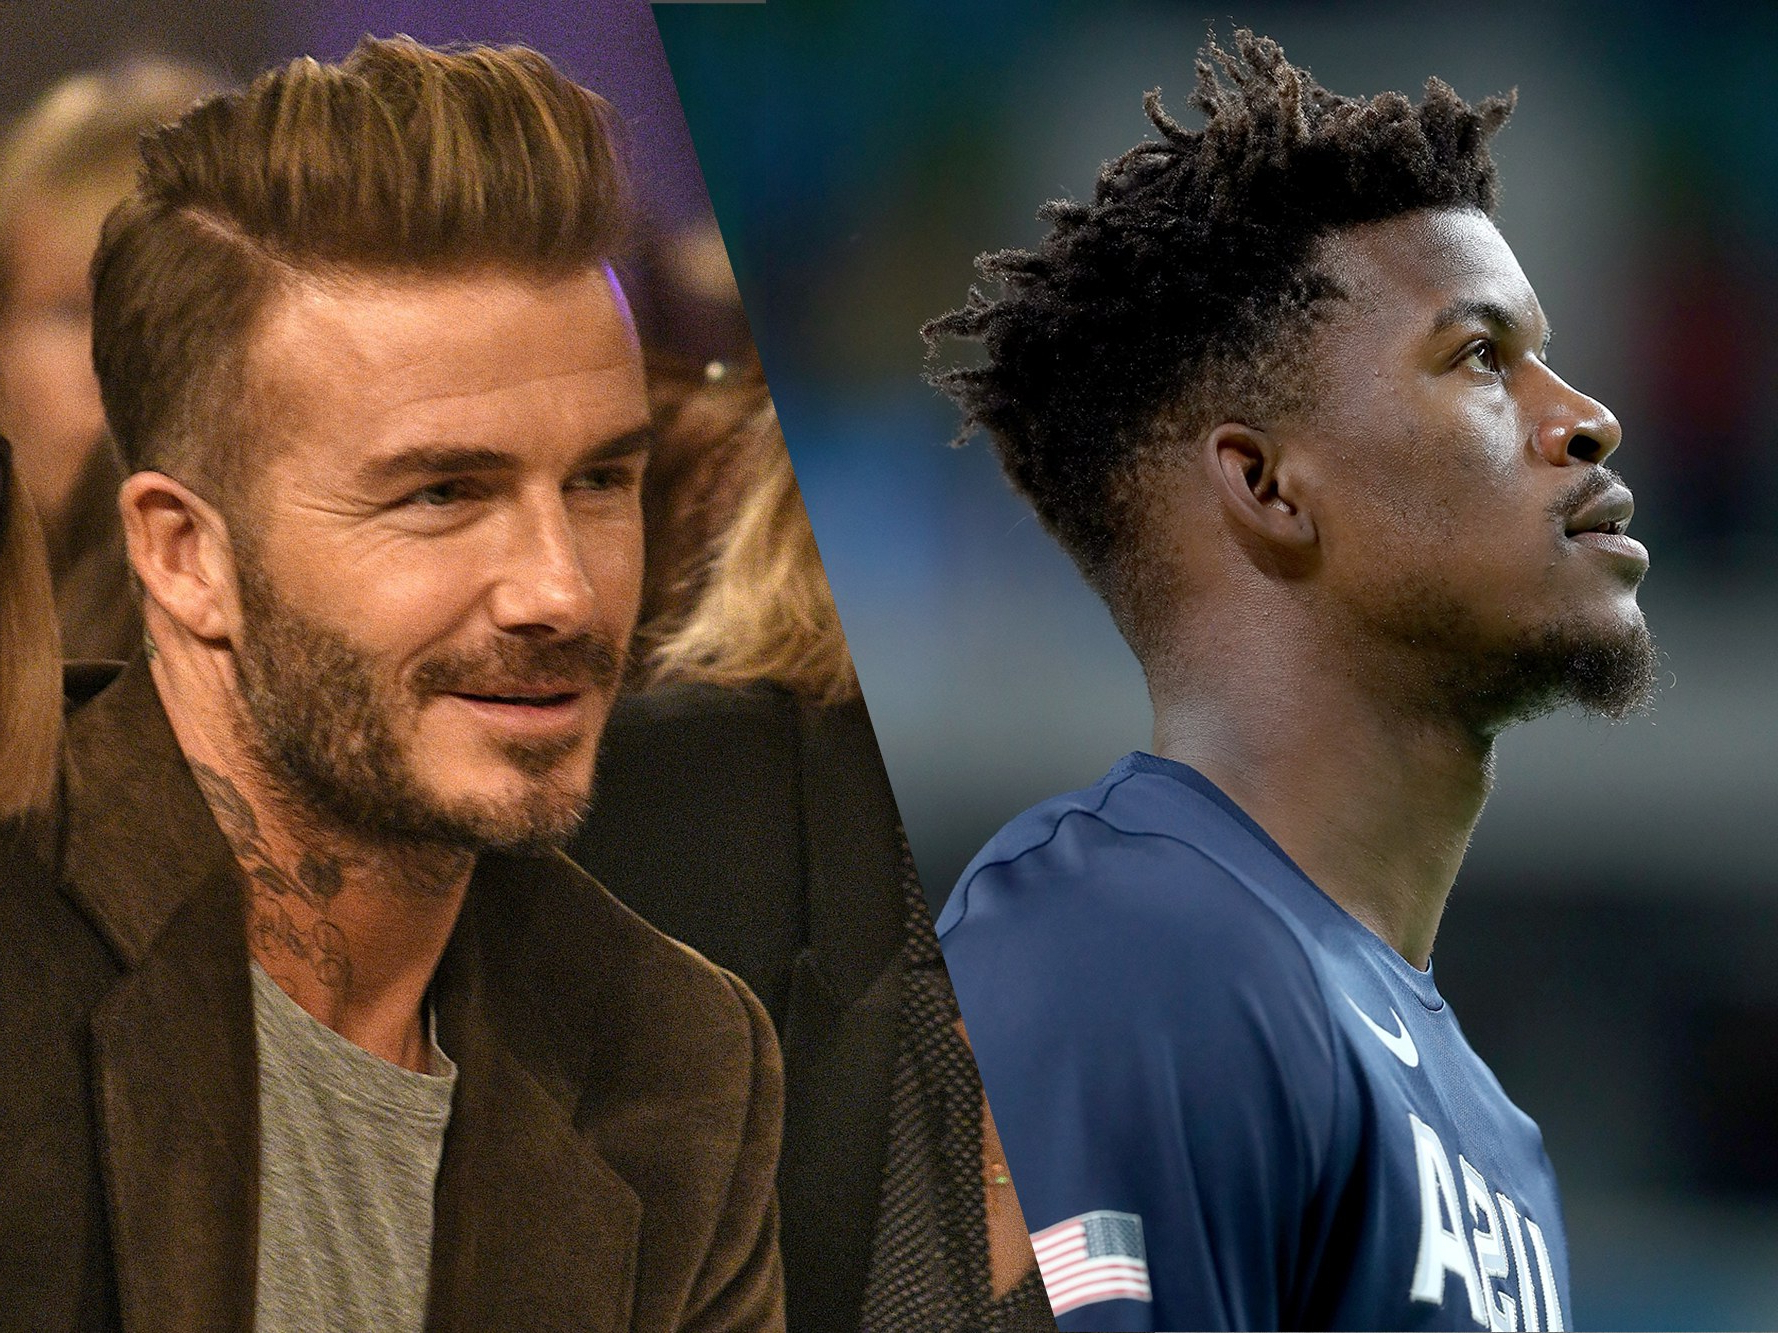 The Best Fade Haircuts To Bring To Your Barber – Gq Intended For Most Popular Bleached Mohawk Hairstyles (View 15 of 20)